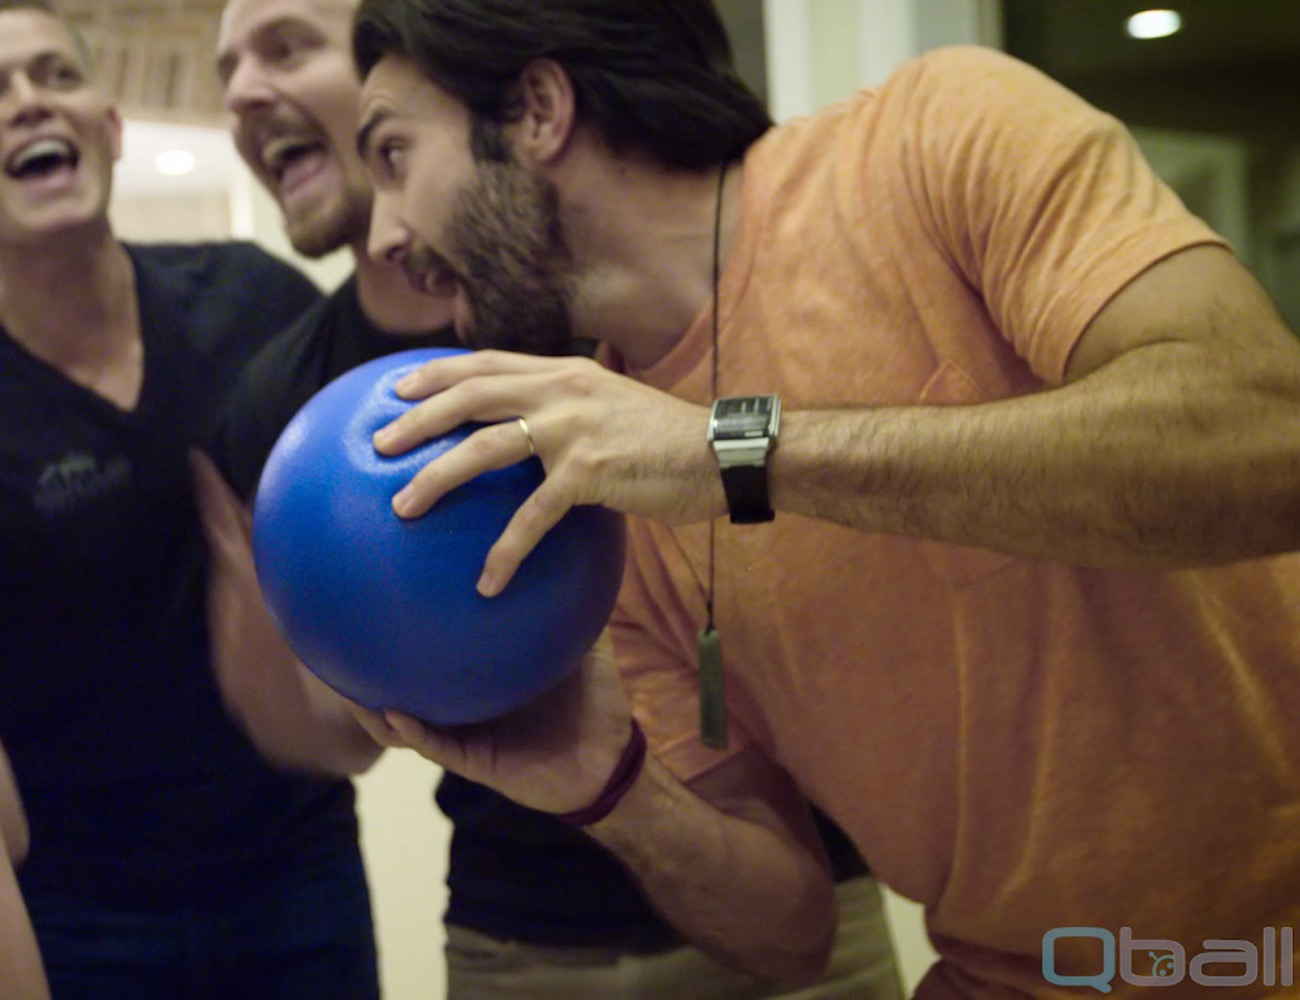 Qball – Throwable Wireless Microphone